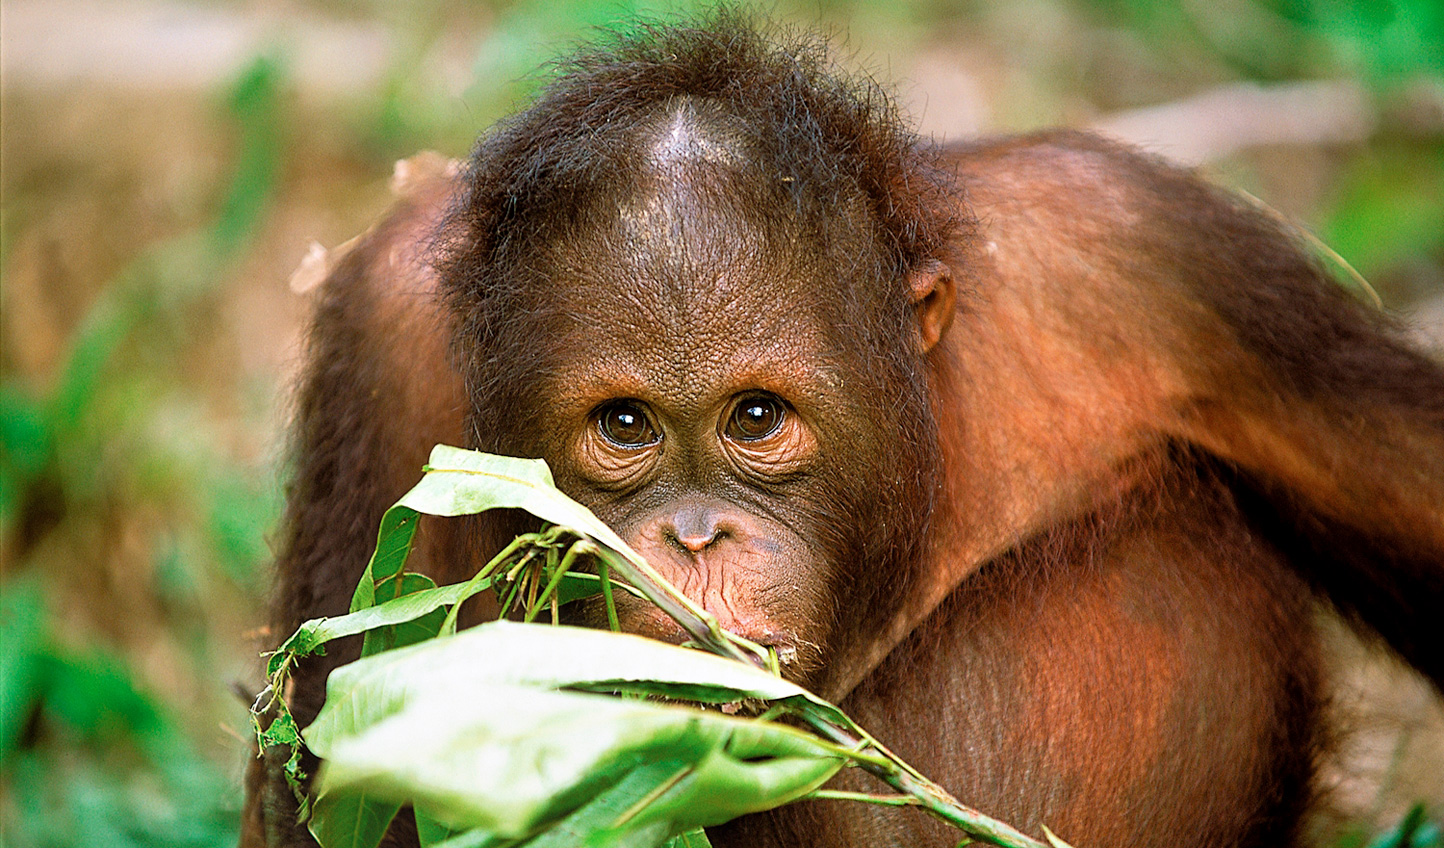 Meet man's closest relatives in Borneo